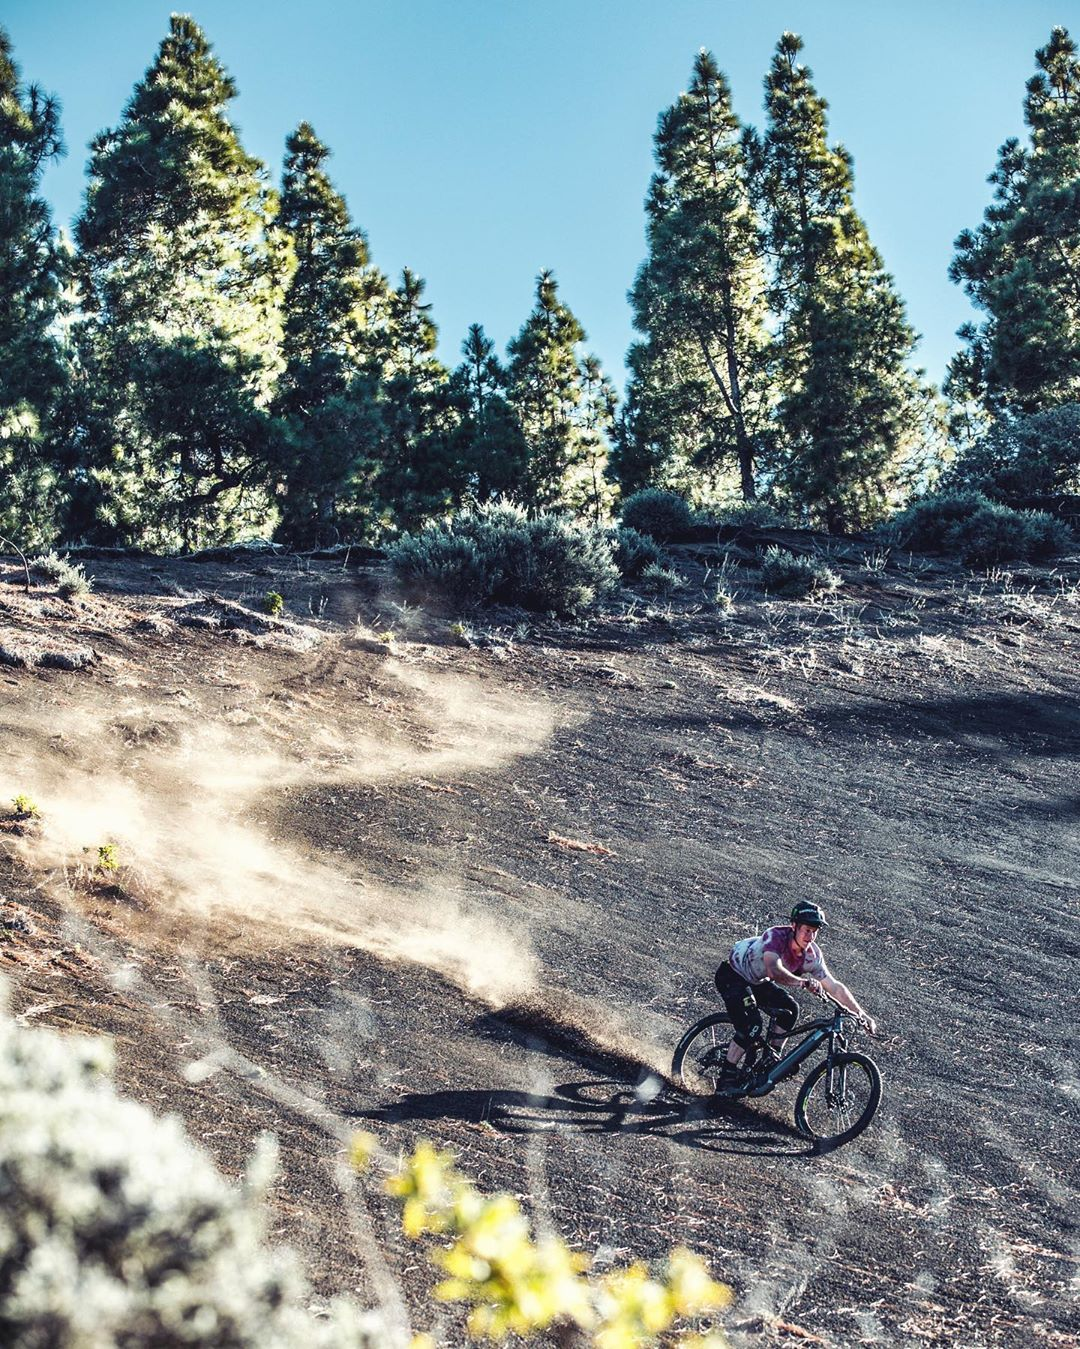 Sam letting me capture his inner snowboarder whilst shredding this volcanic Loam slope in Gran Canaria during an epic weeks trip a few months back. #photoshoot #throwbackthursday #emtb #haibike #eebit